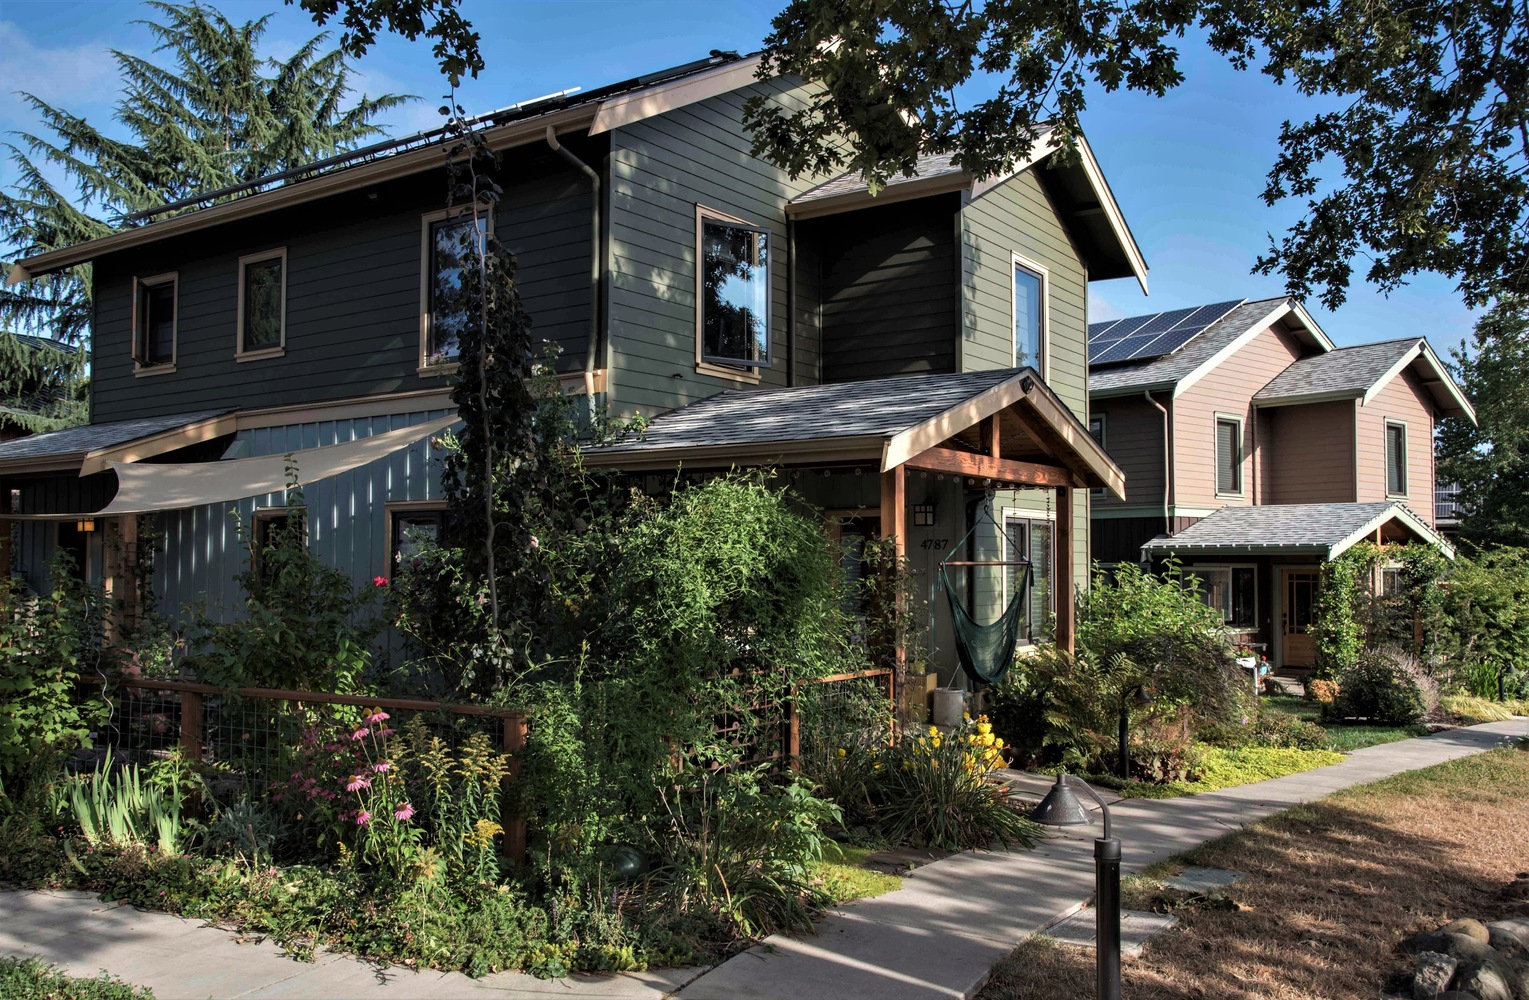 AIA Names the Best Housing Projects of